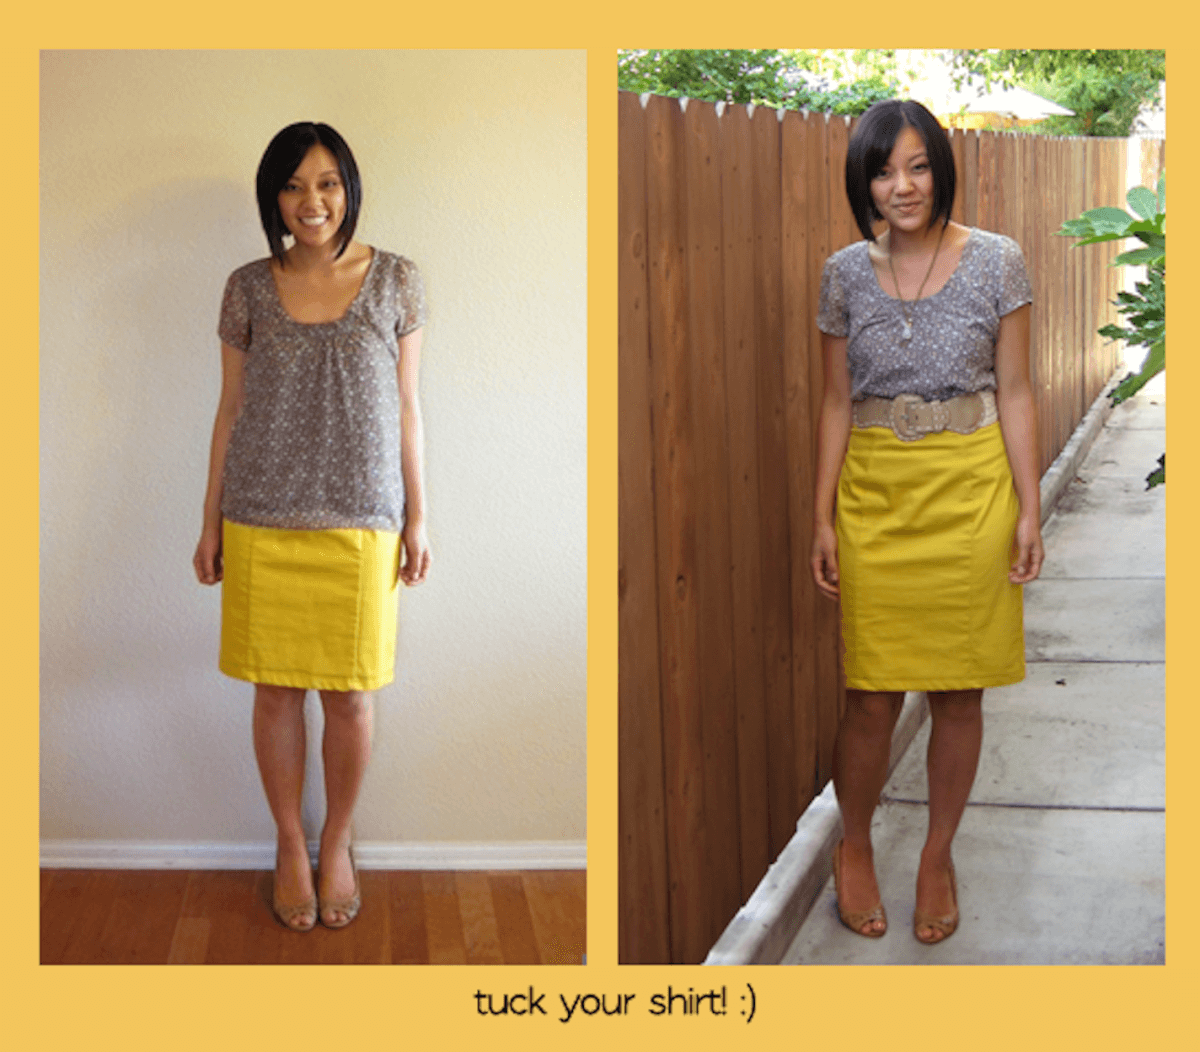 Building a Remixable Wardrobe: Tuck in Your Shirt